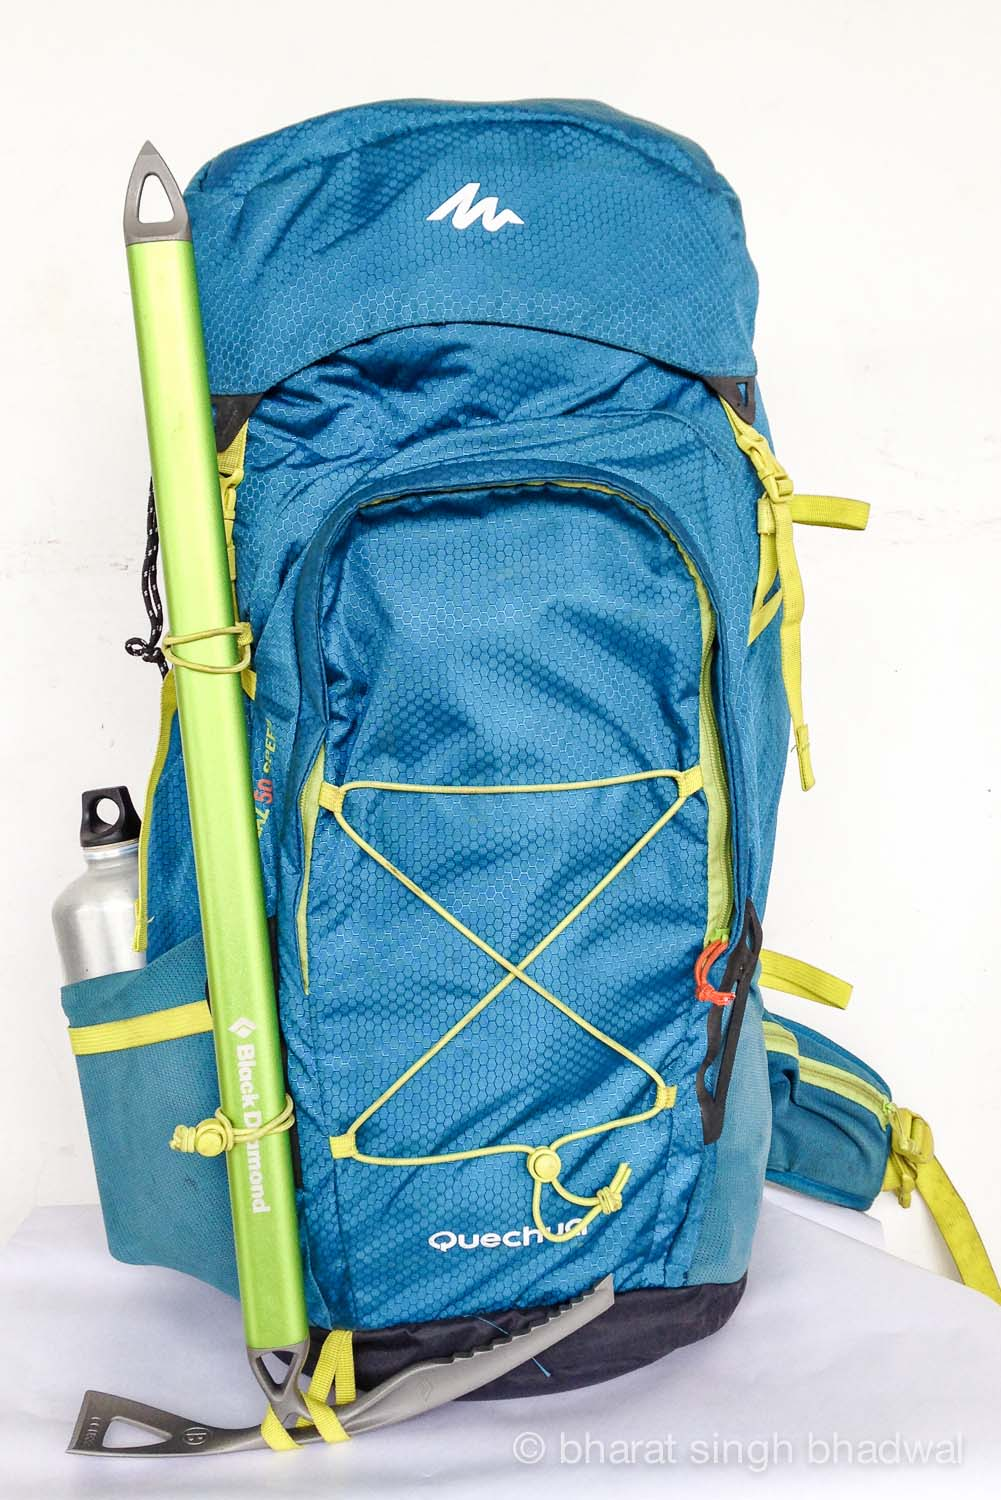 Trekking poles / ice axe loops with the correct way to cinch down an ice pick.